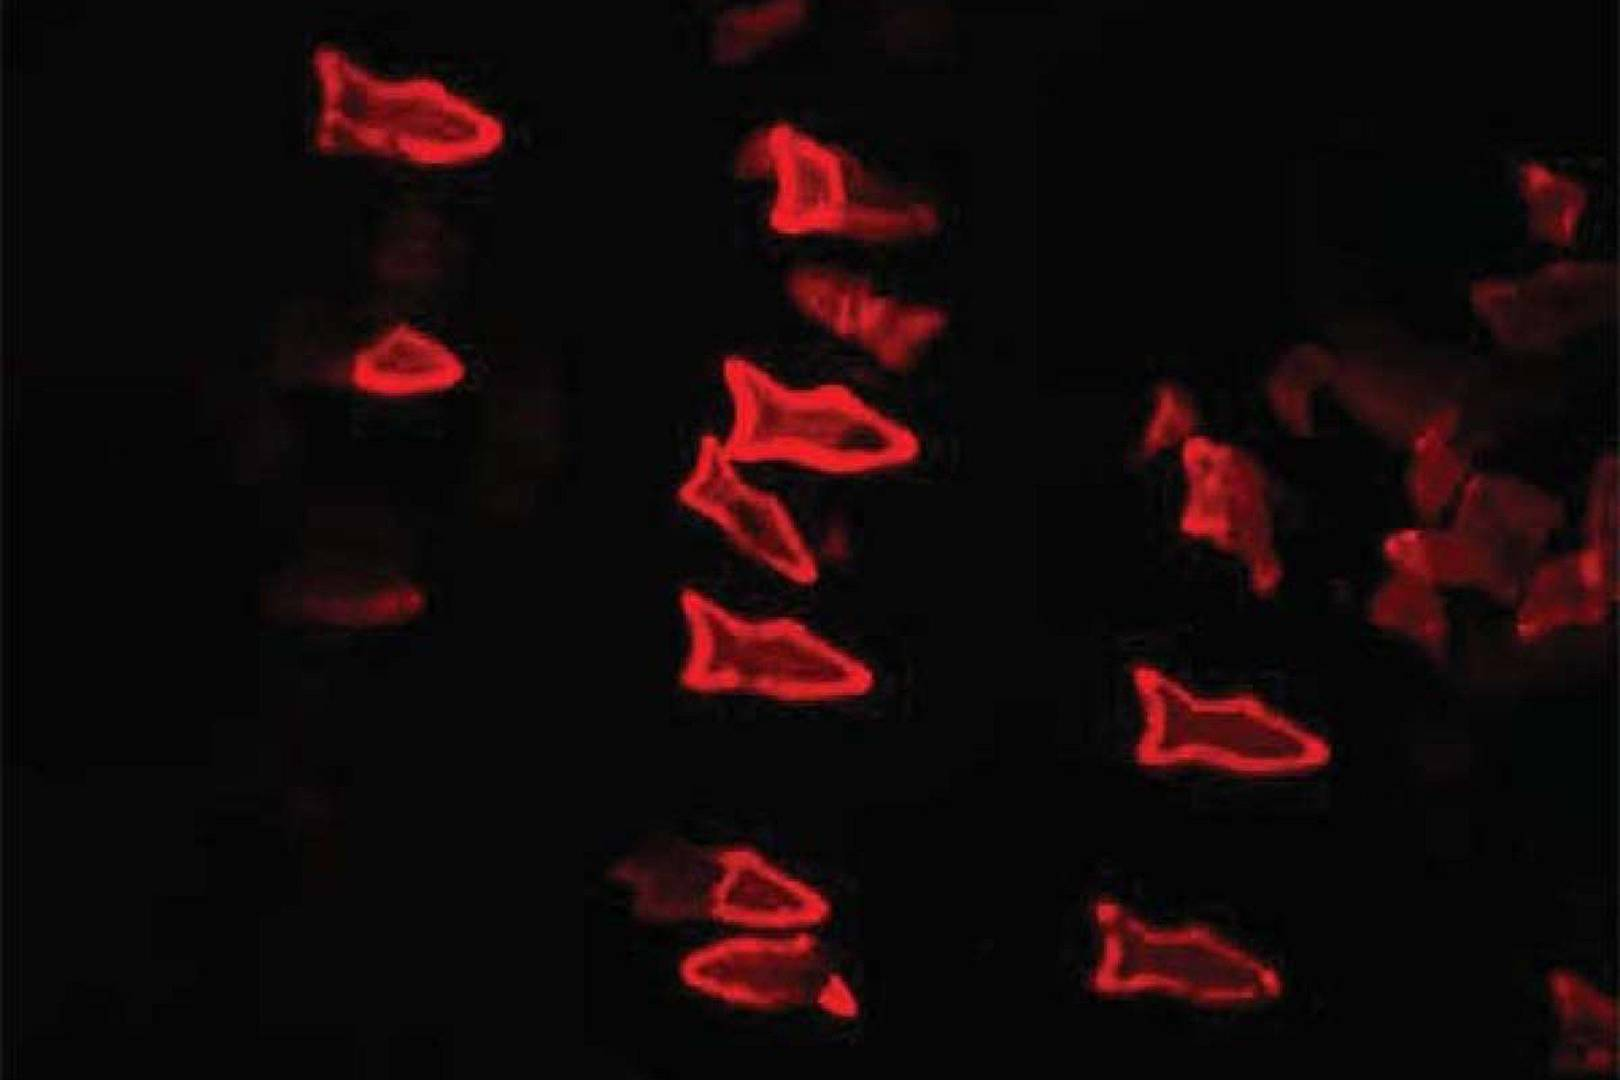 3D-printed 'microfish' swim in bloodstream to deliver drugs